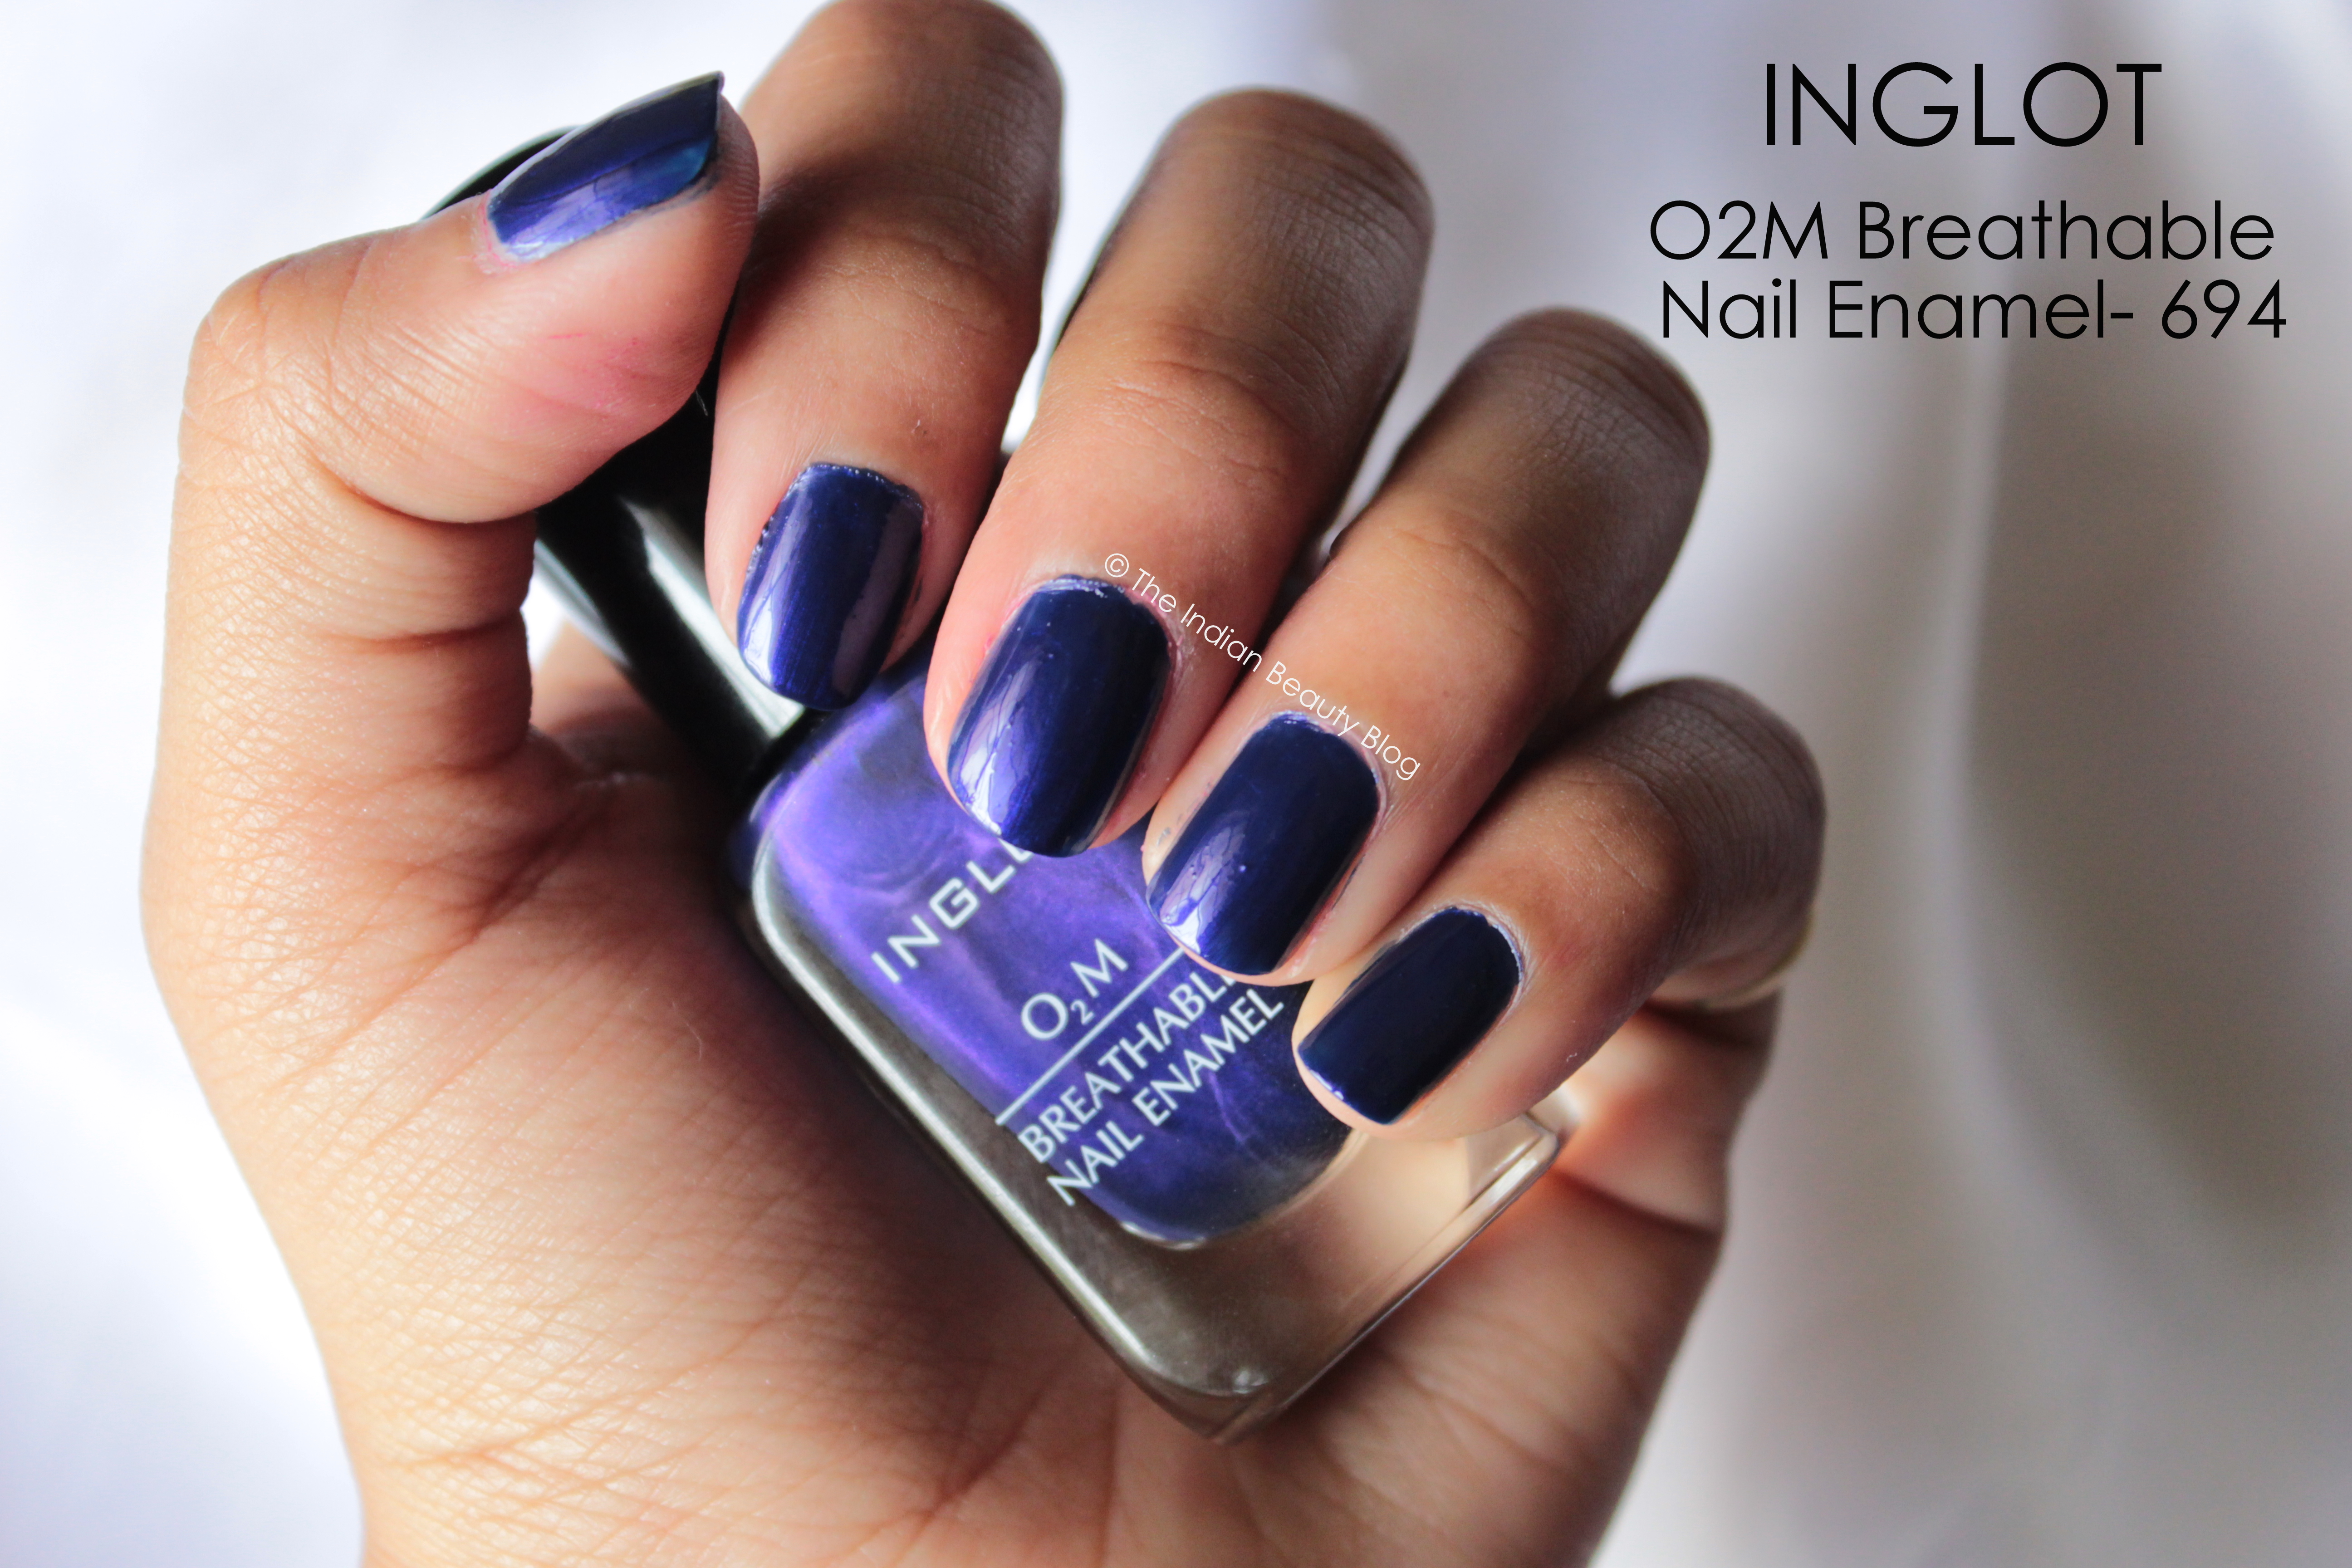 Inglot lipstick 294 and o2m breathable nail enamel 694 review